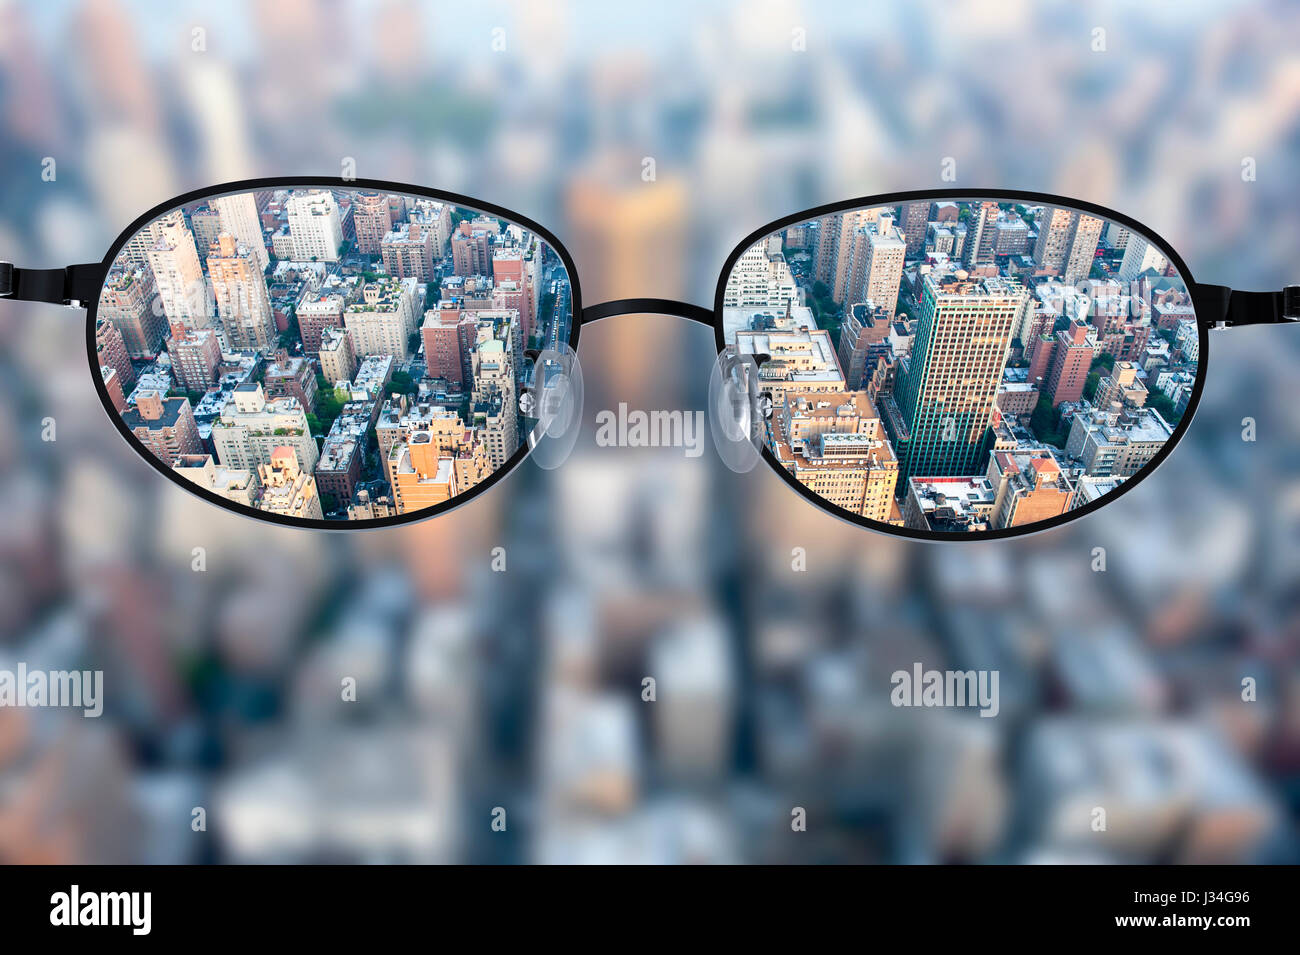 Clear Cityscape Focused In Glasses Lenses With Blurred